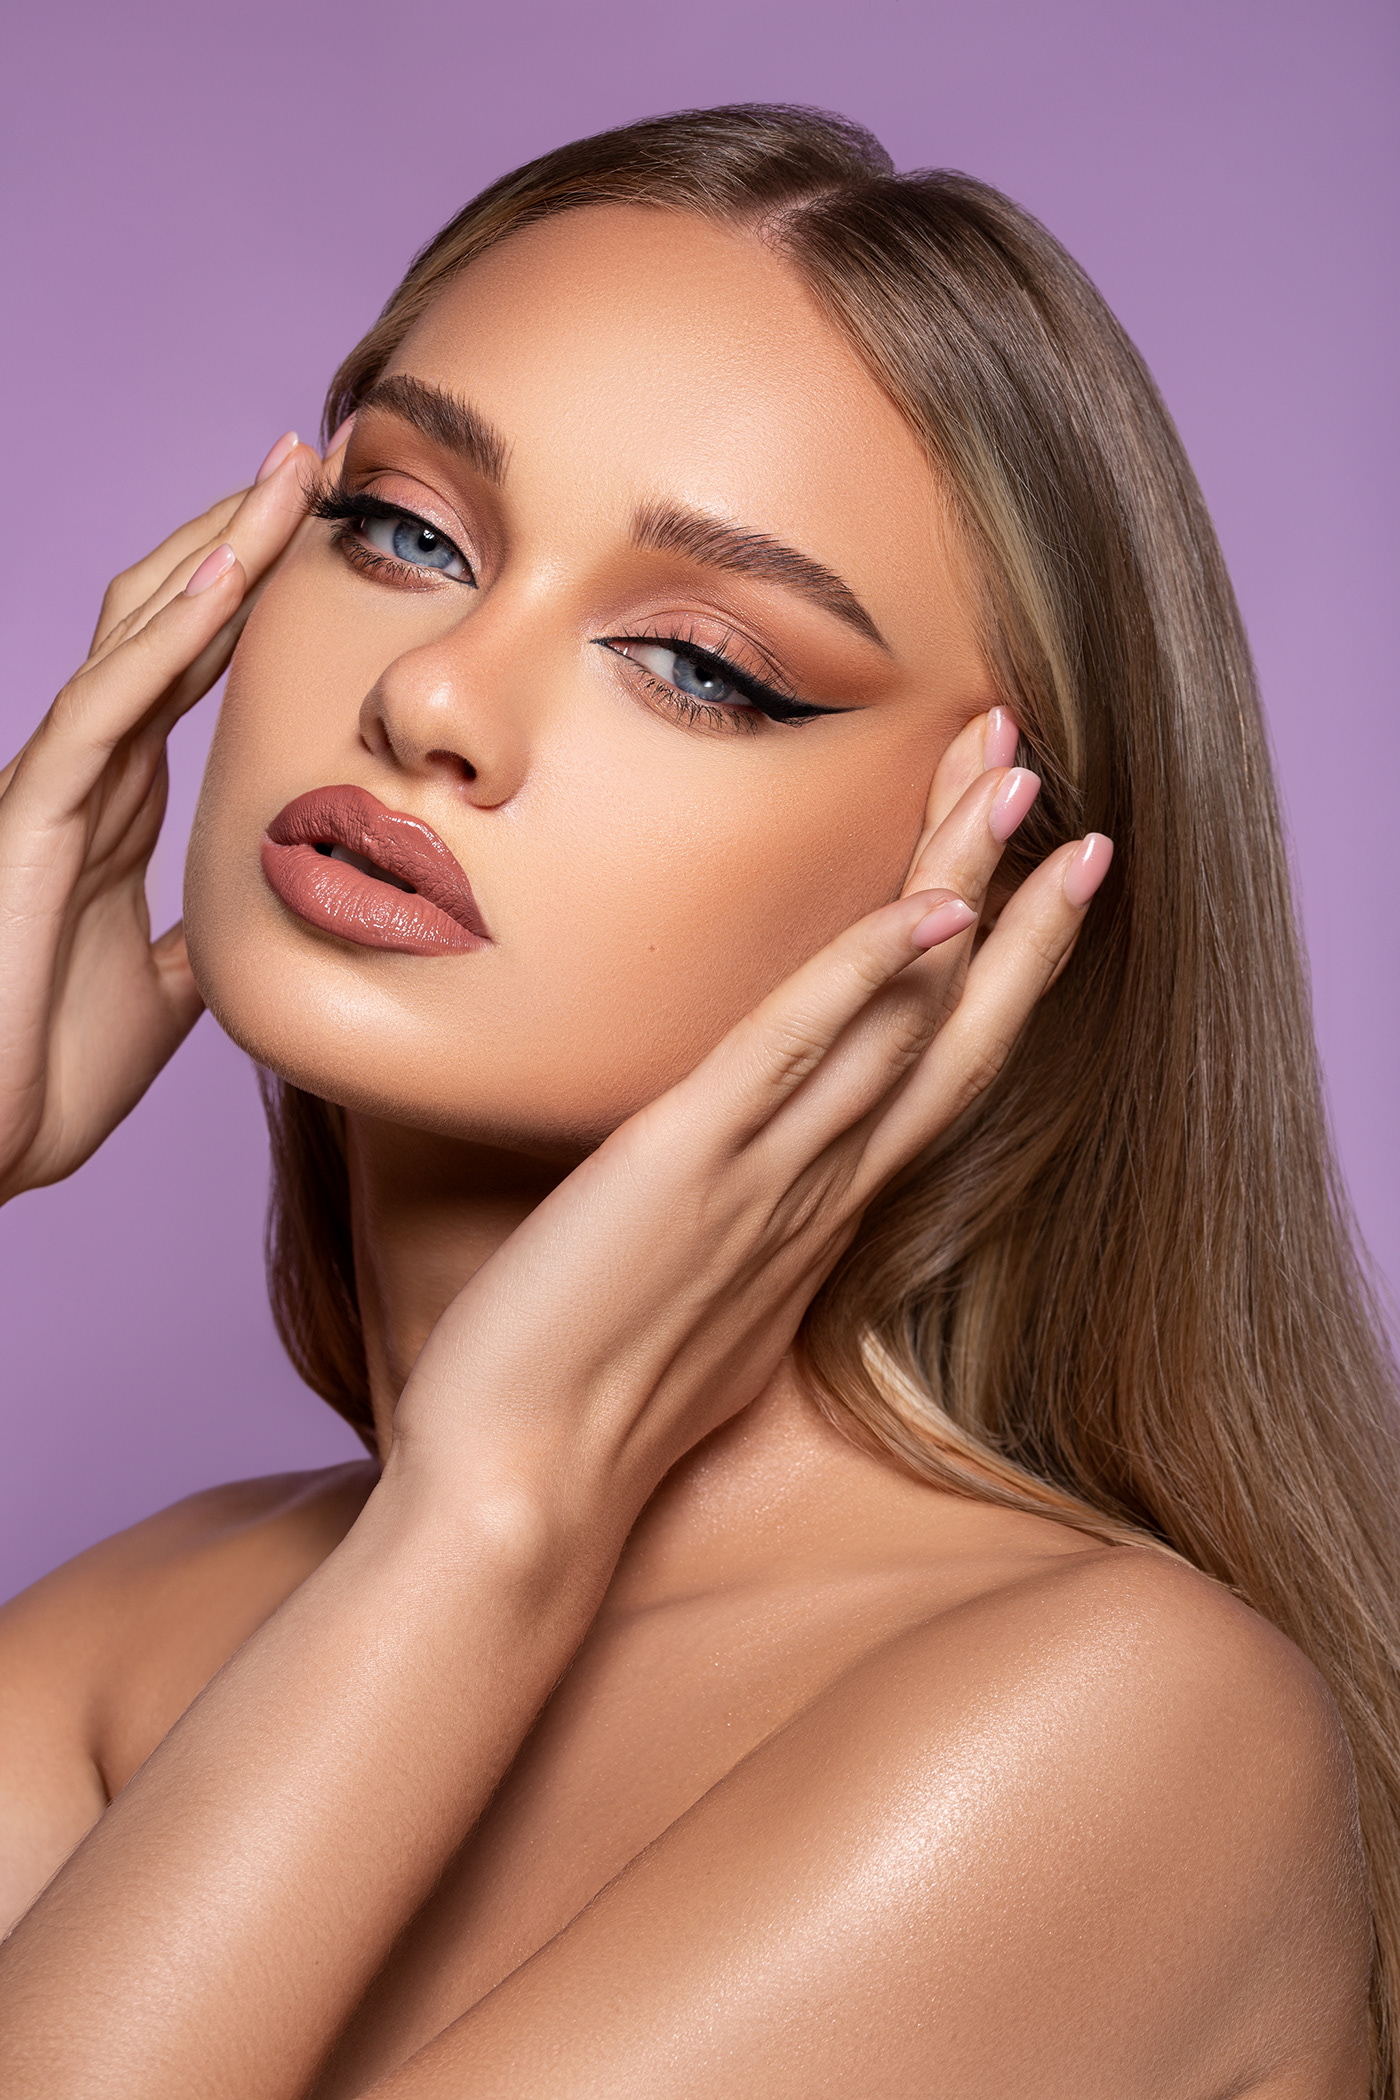 beauty editorial Fashion  makeup model Photography  retouch skin woman